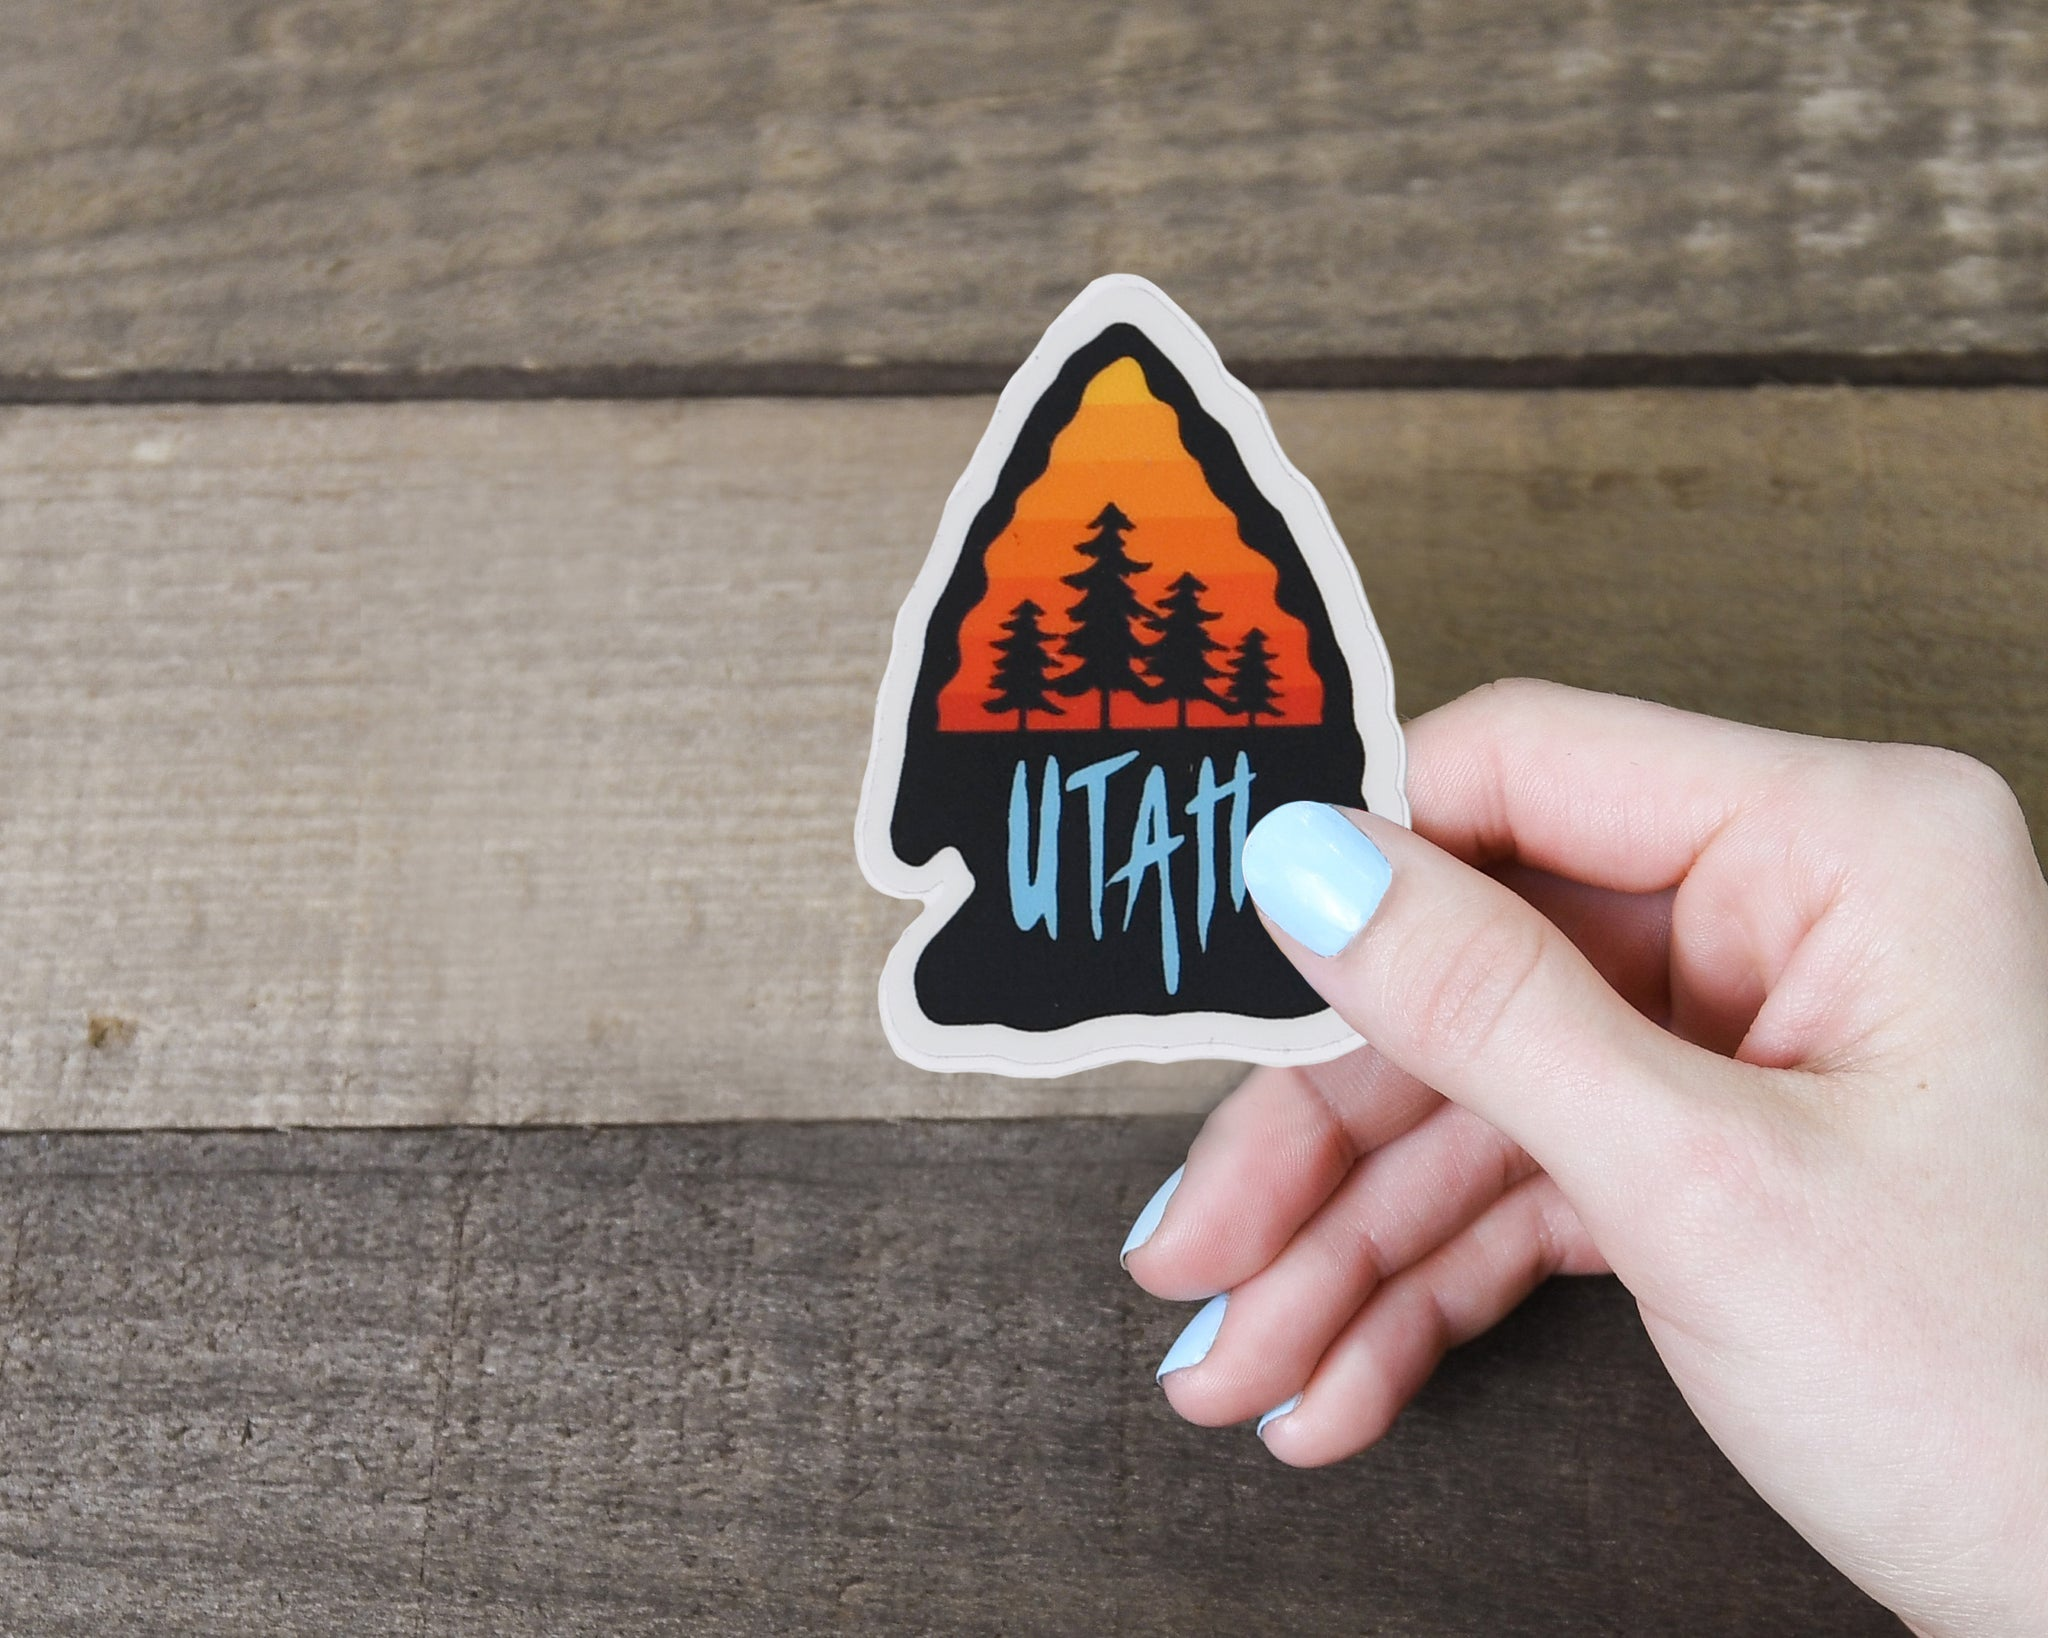 Utah Arrowhead Sticker